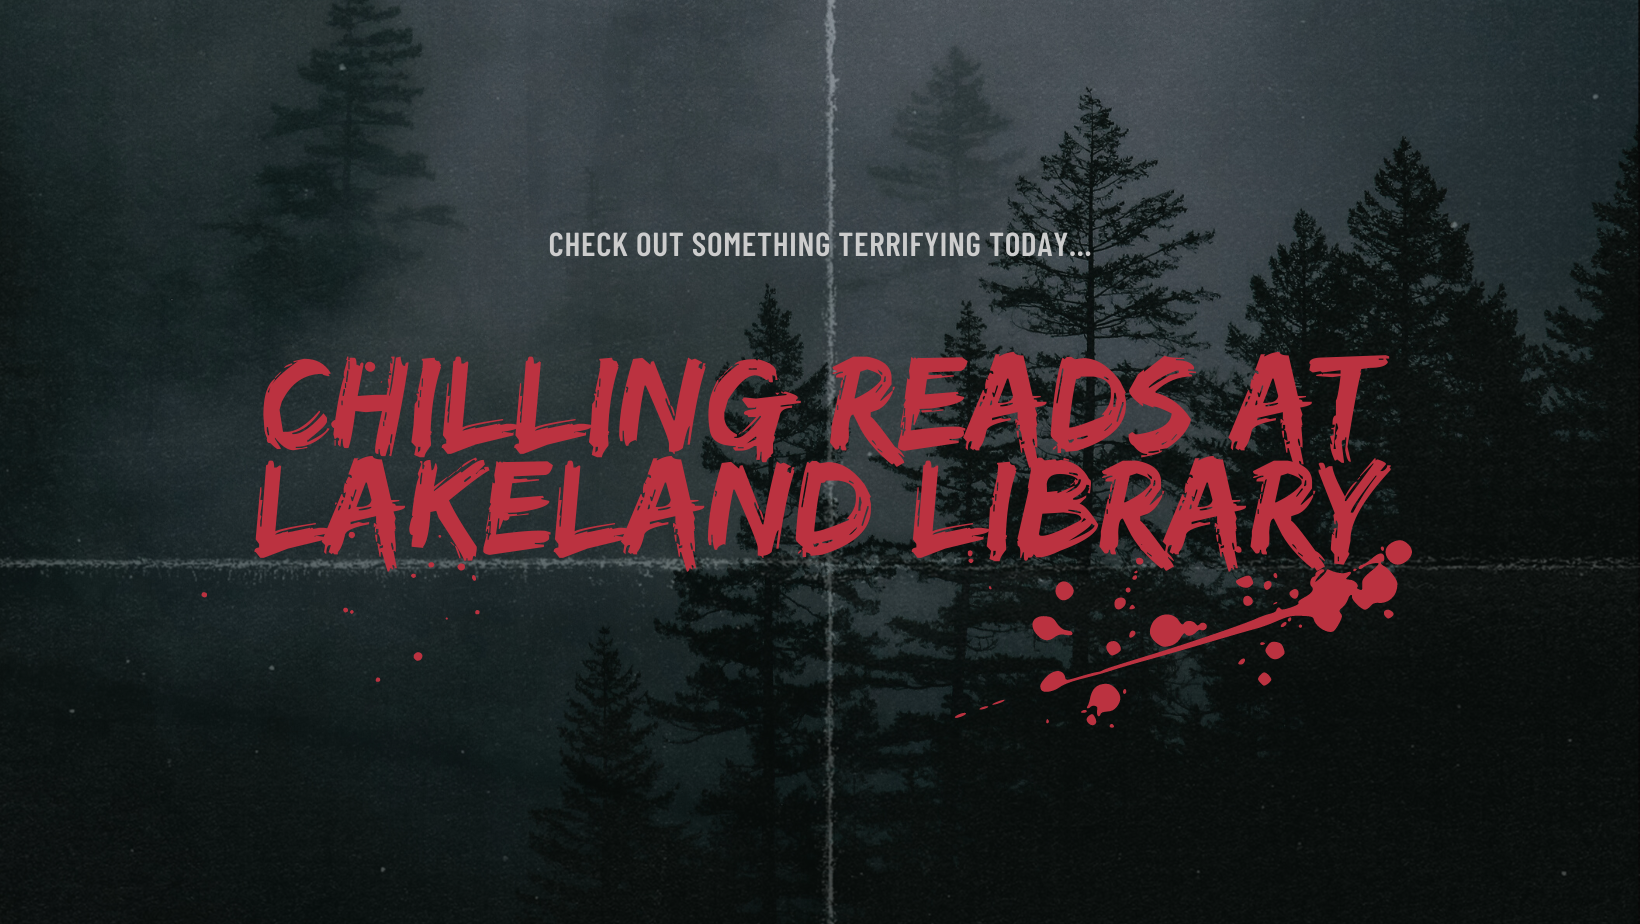 chilling reads at lakeland library